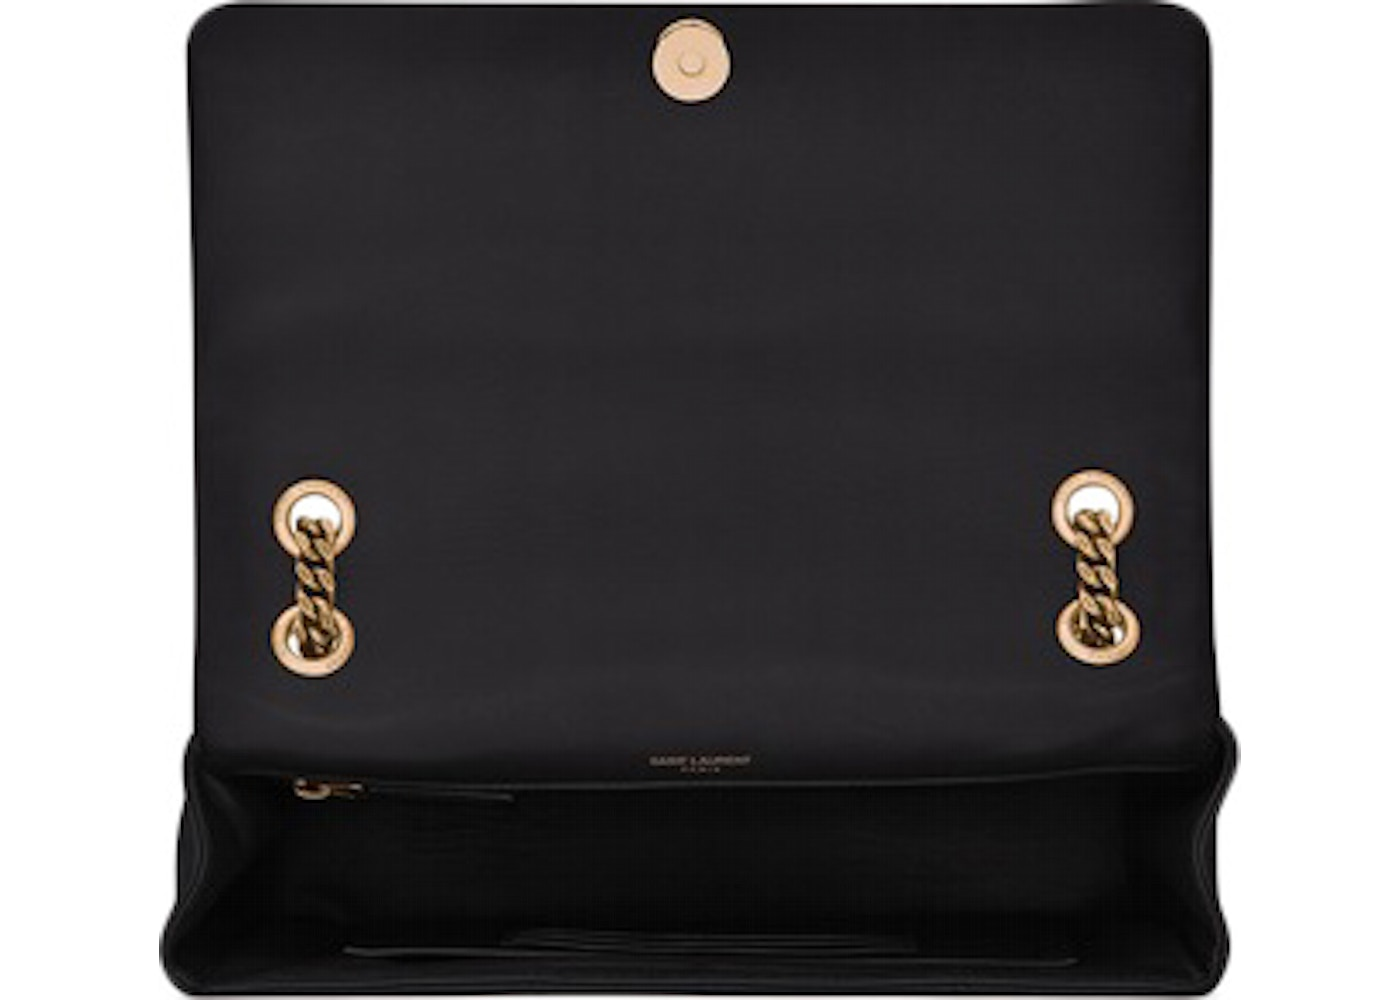 Saint Laurent Jamie Bag Carre Rive Gauche Lambskin Gold-tone Medium Black 2fcff92adf94c